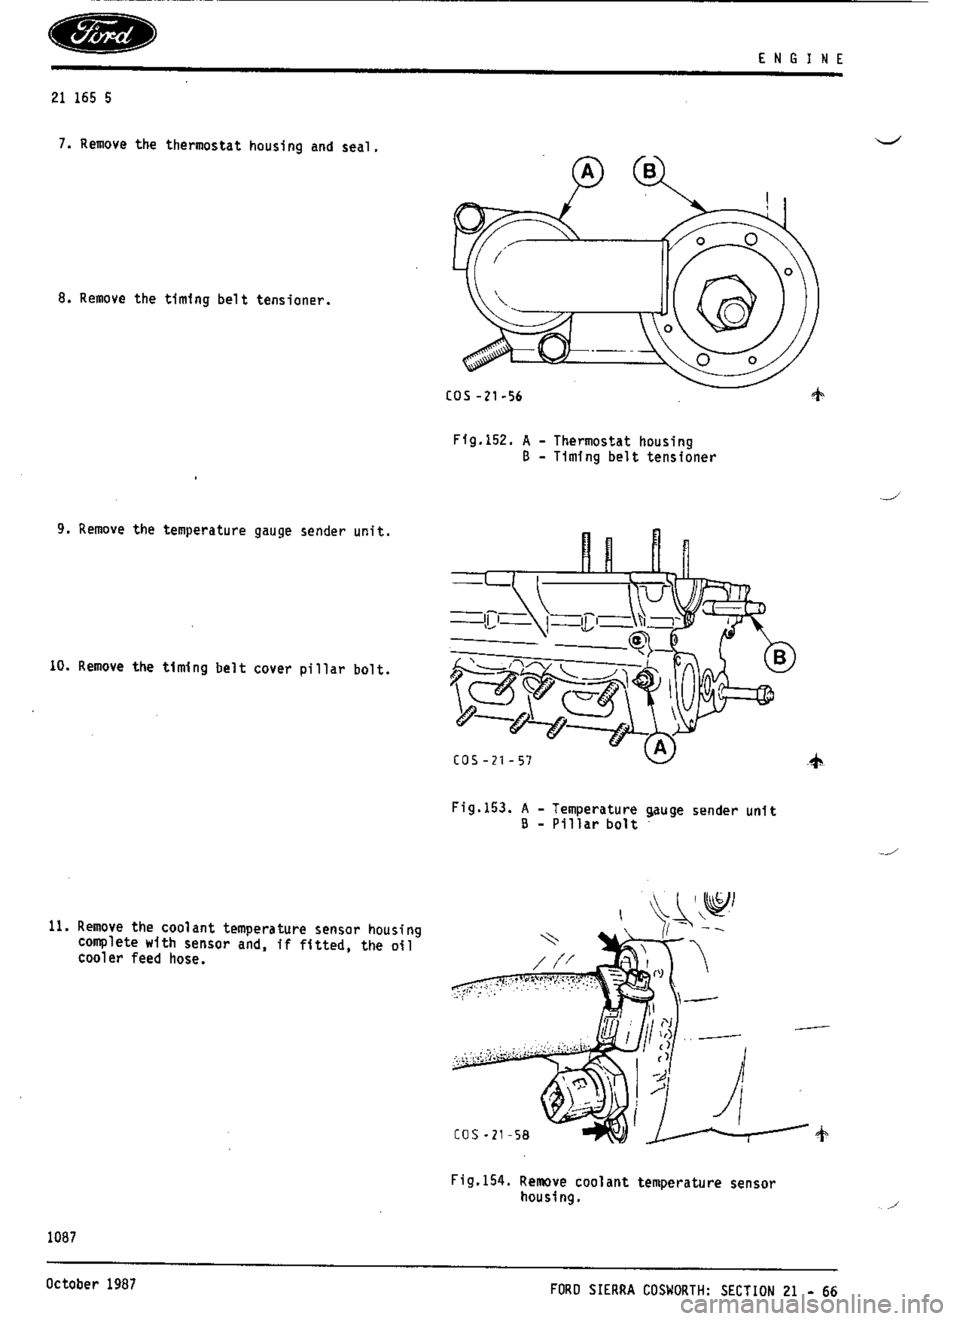 Oldsmobile Brakes Diagram : Oldsmobile bravada engine diagram html